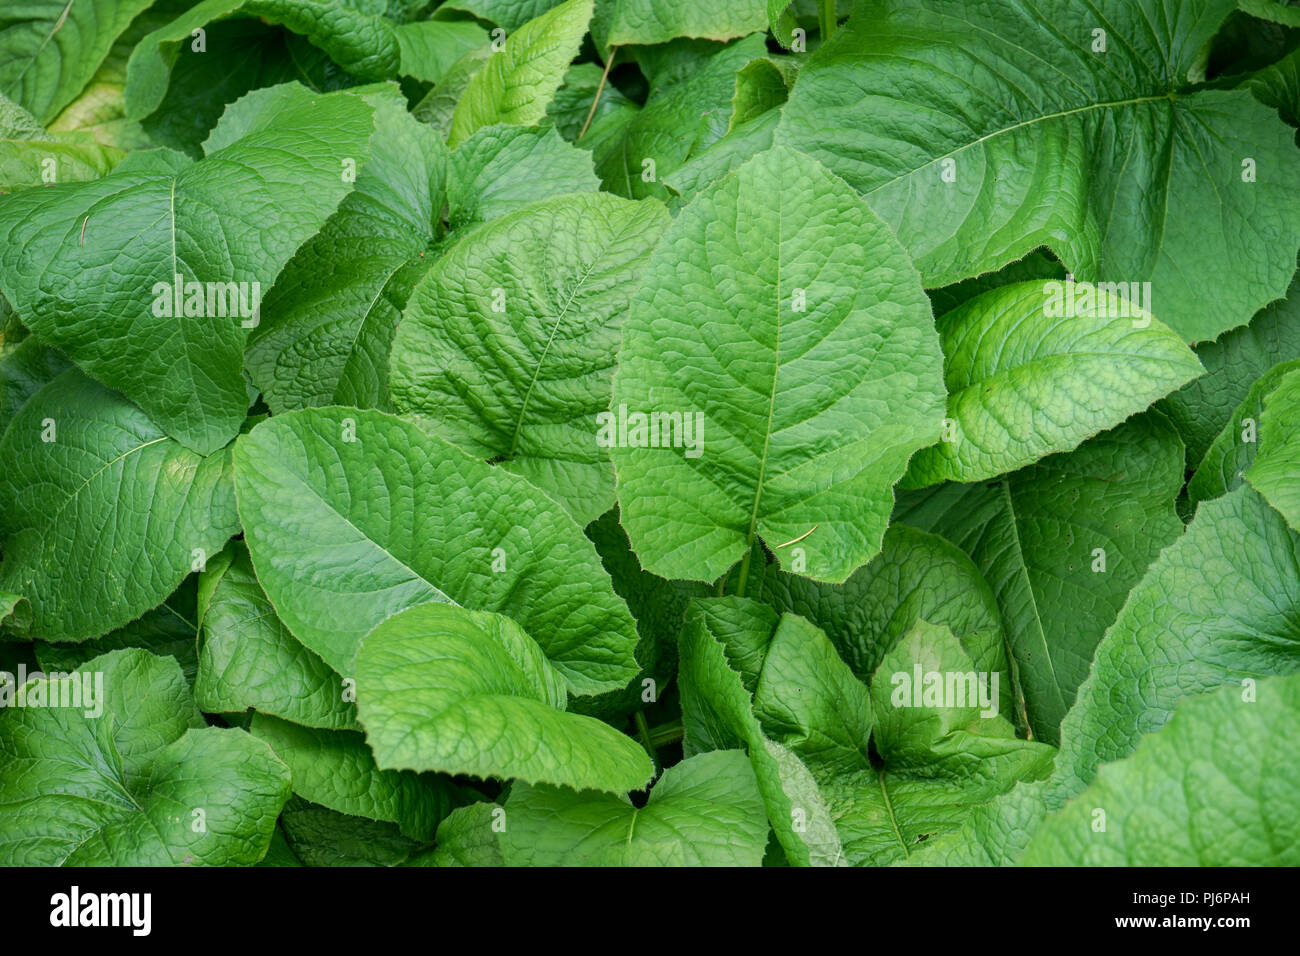 Leaf pattern design with various sizes of asteraceae plant from russia - Stock Image